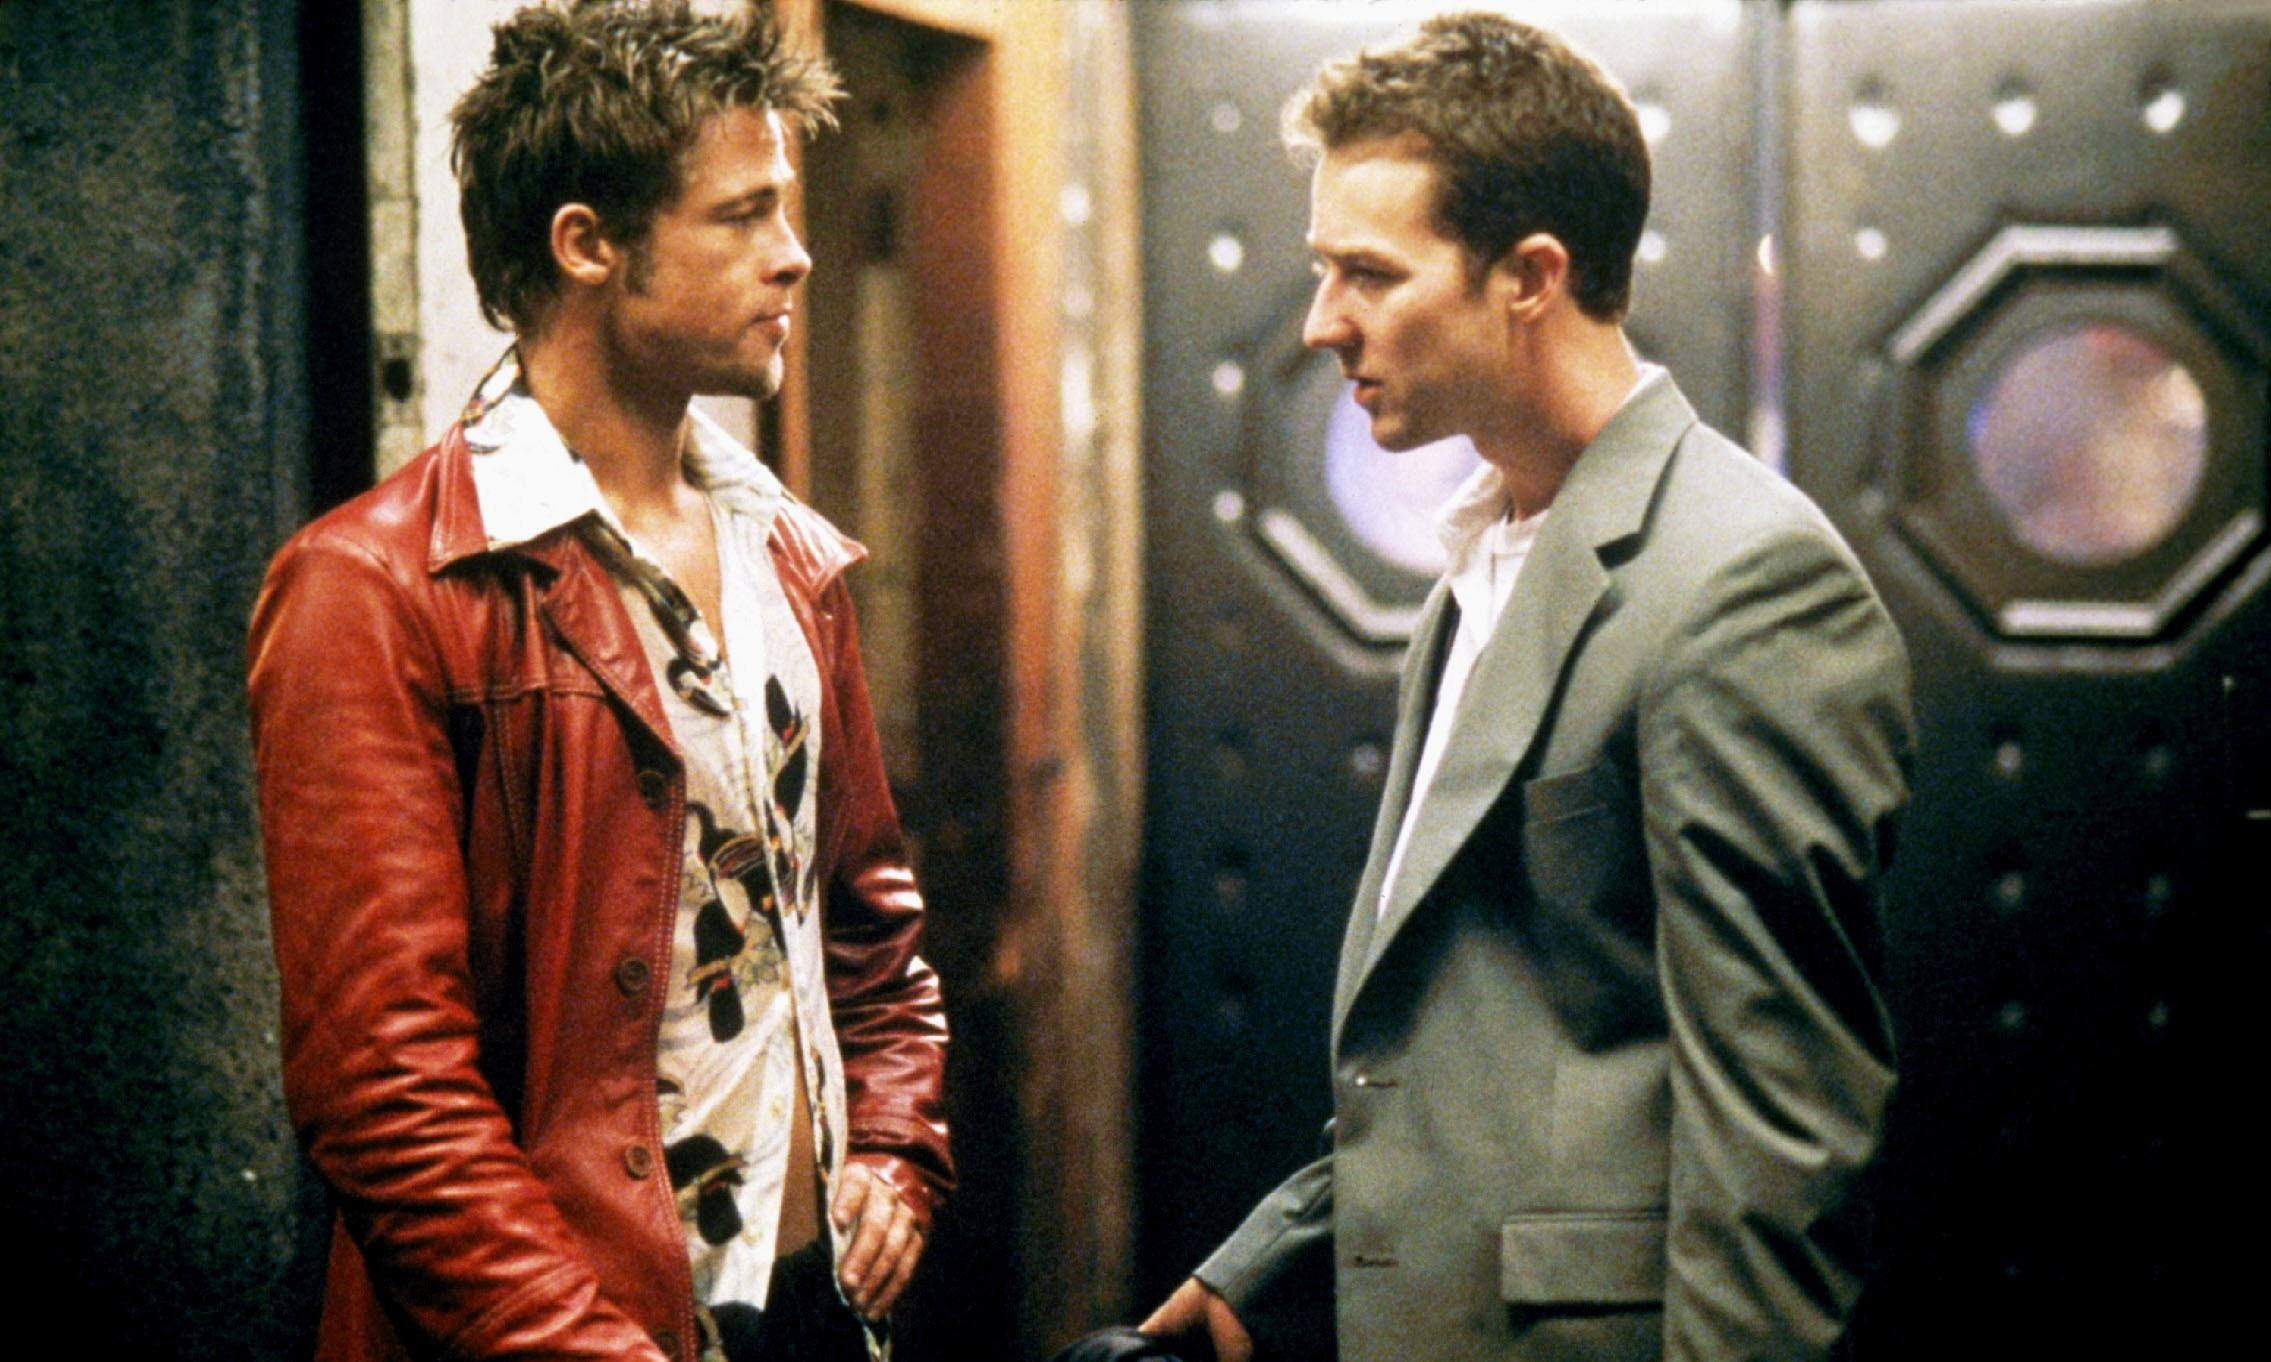 Fight Club at 20: the prescience and power of David Fincher's drama